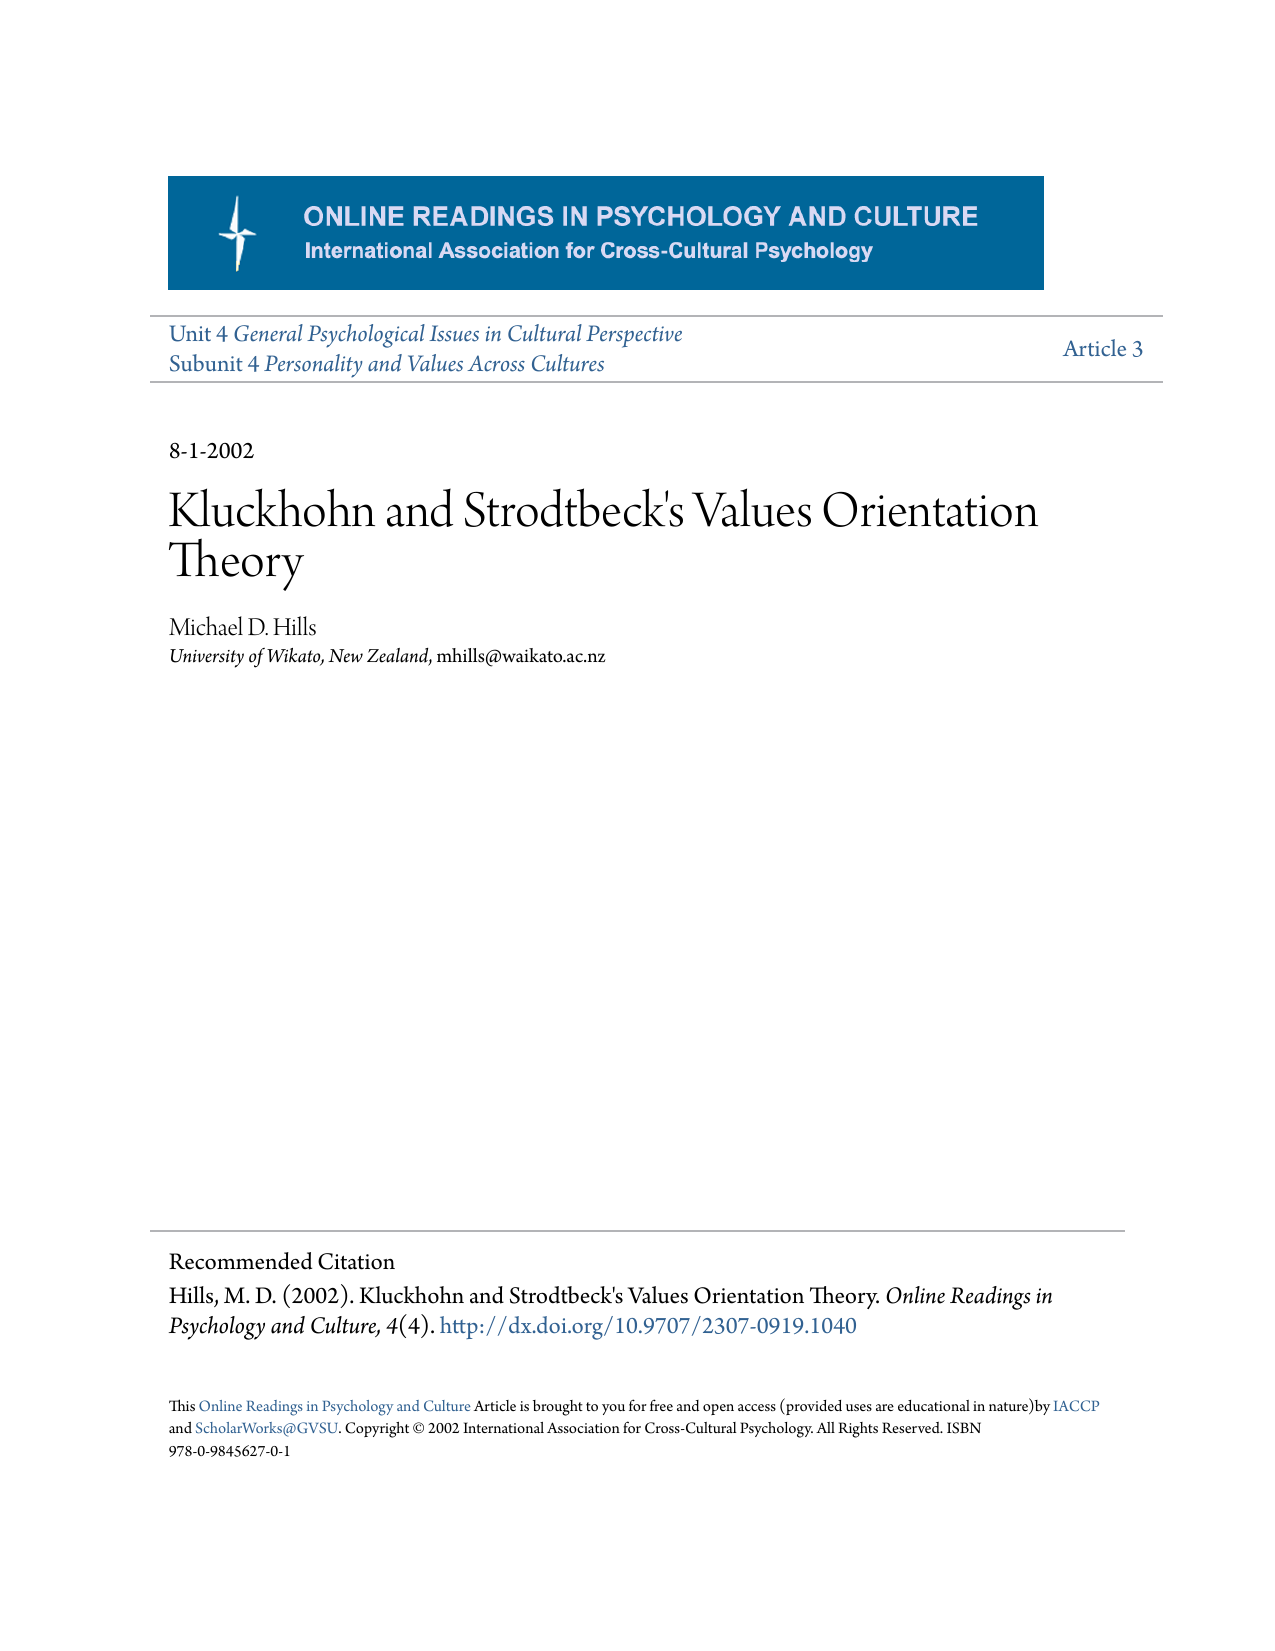 kluckhohn and strodtbeck example